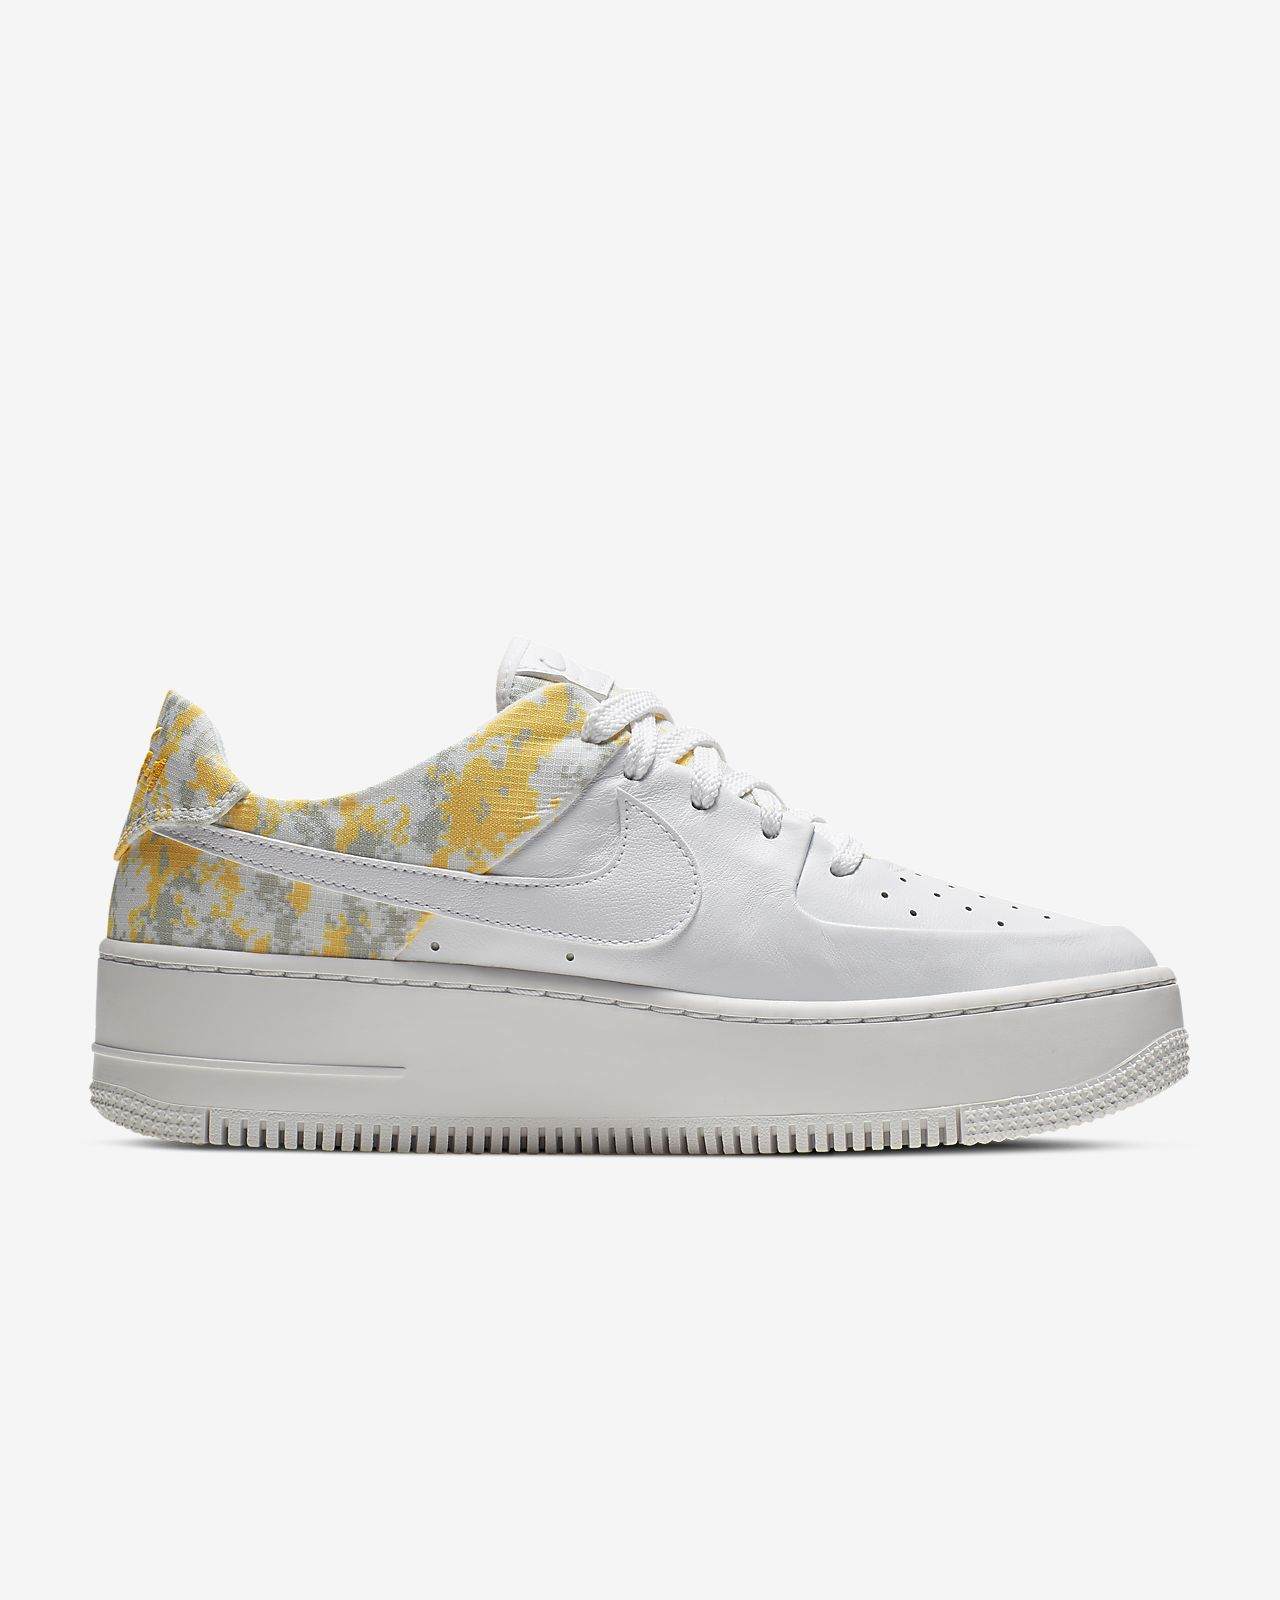 brand new 78bc2 b3ead Chaussure Nike Air Force 1 Sage Low Premium Camo pour Femme. Nike.com CA